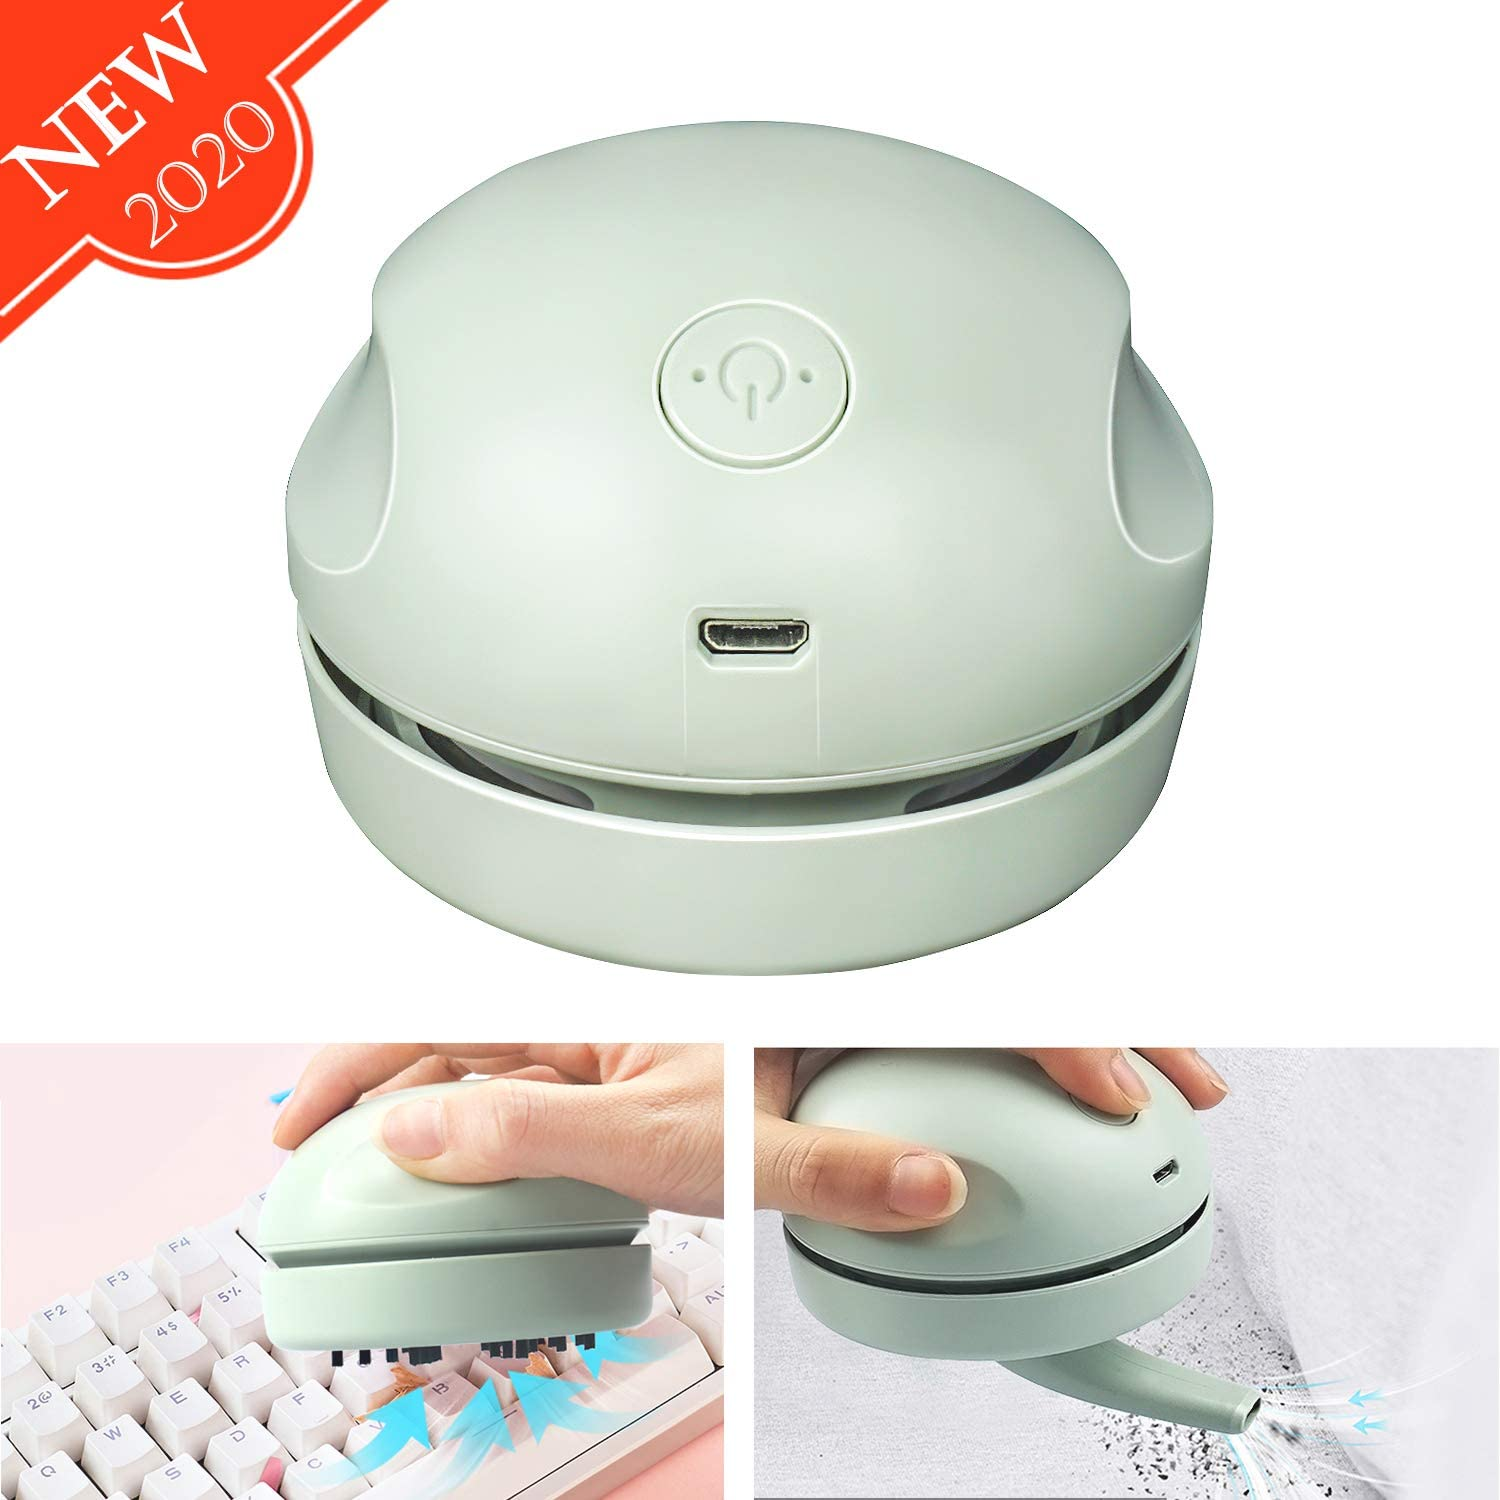 Desktop Vacuum Cleaner with Clean Brush Vacuum Nozzle, High Efficiency Detachable Mini Vacuum Cleaner USB Charging, No Dead Angle Cleaning, Best for Cleaning Dust/Crumbs/Computer Keyboard